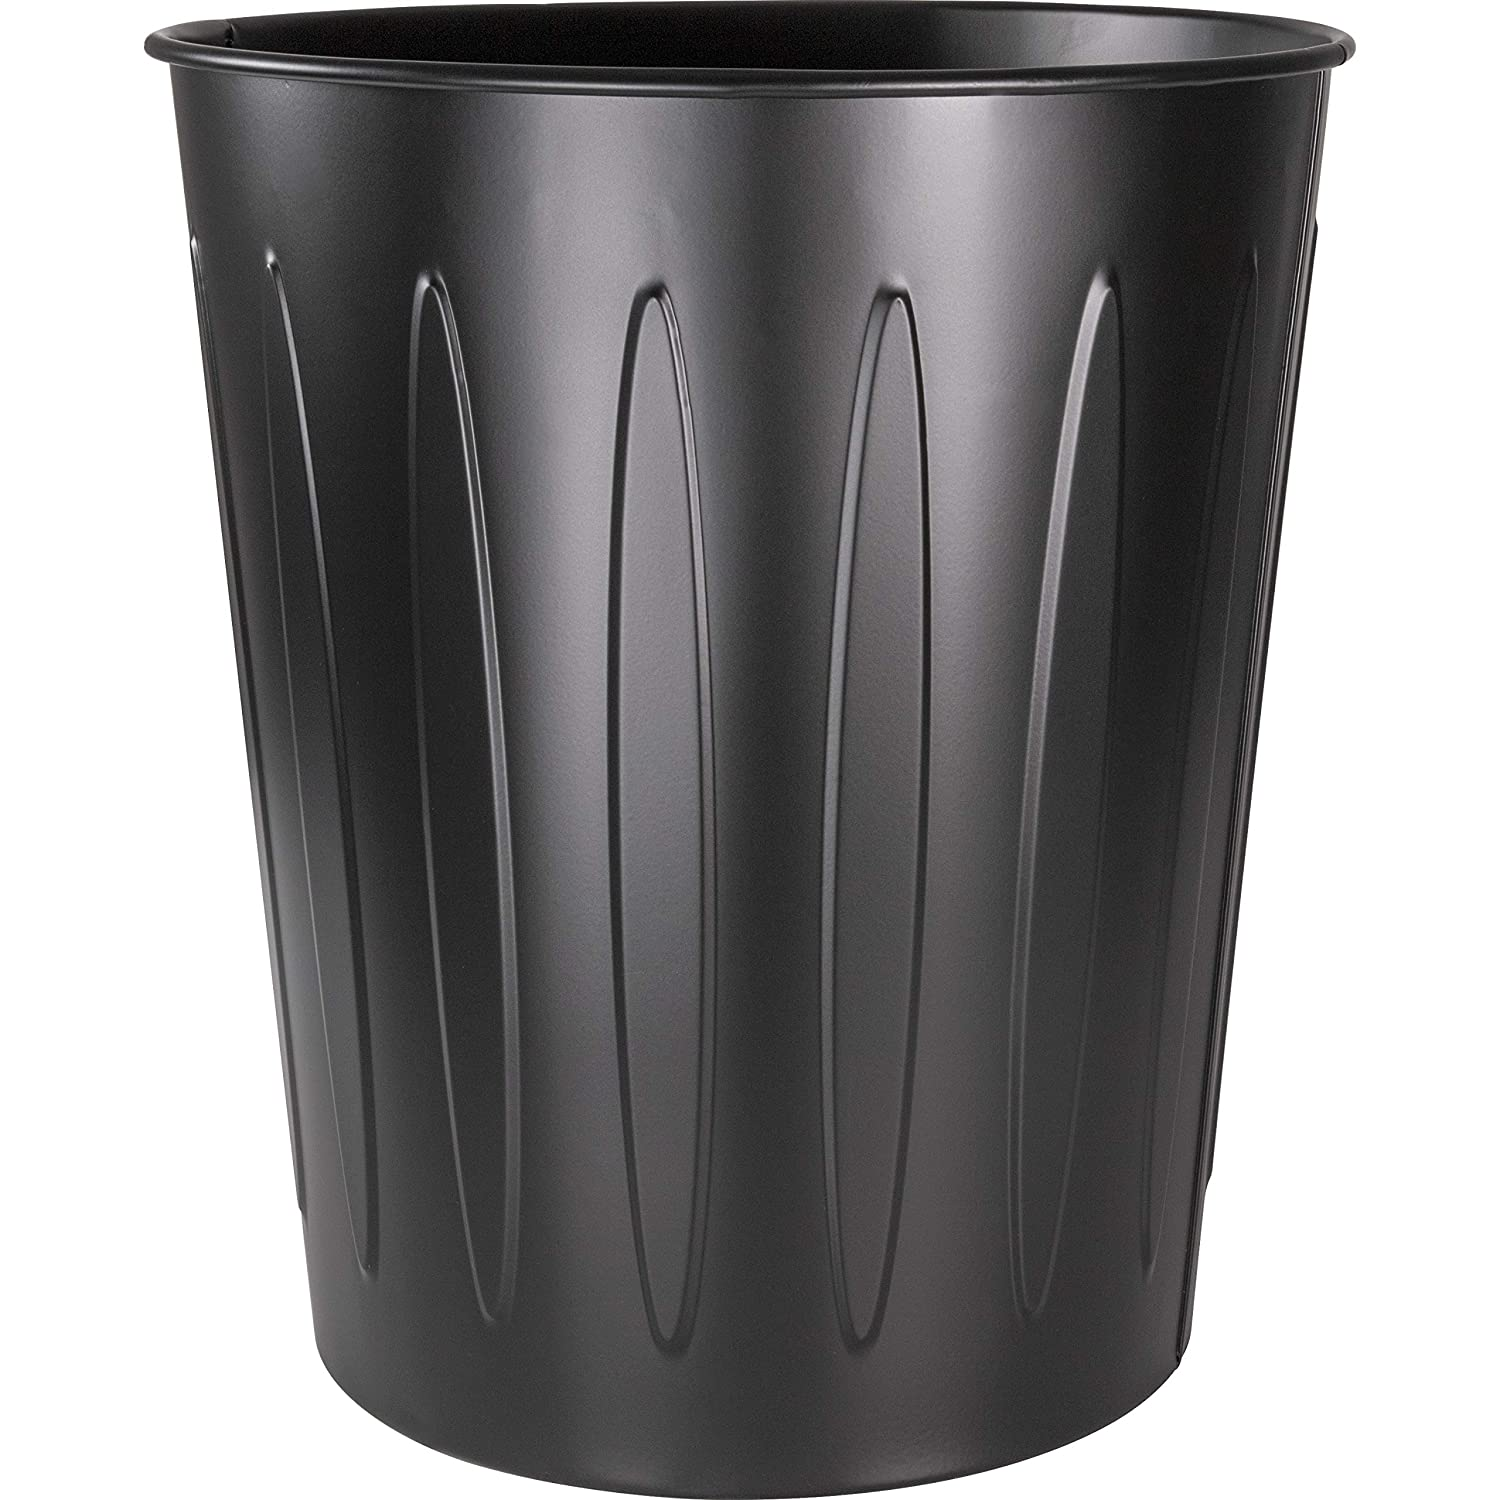 Genuine Joe Steel 6 Gallon Fire-Safe Trash Can